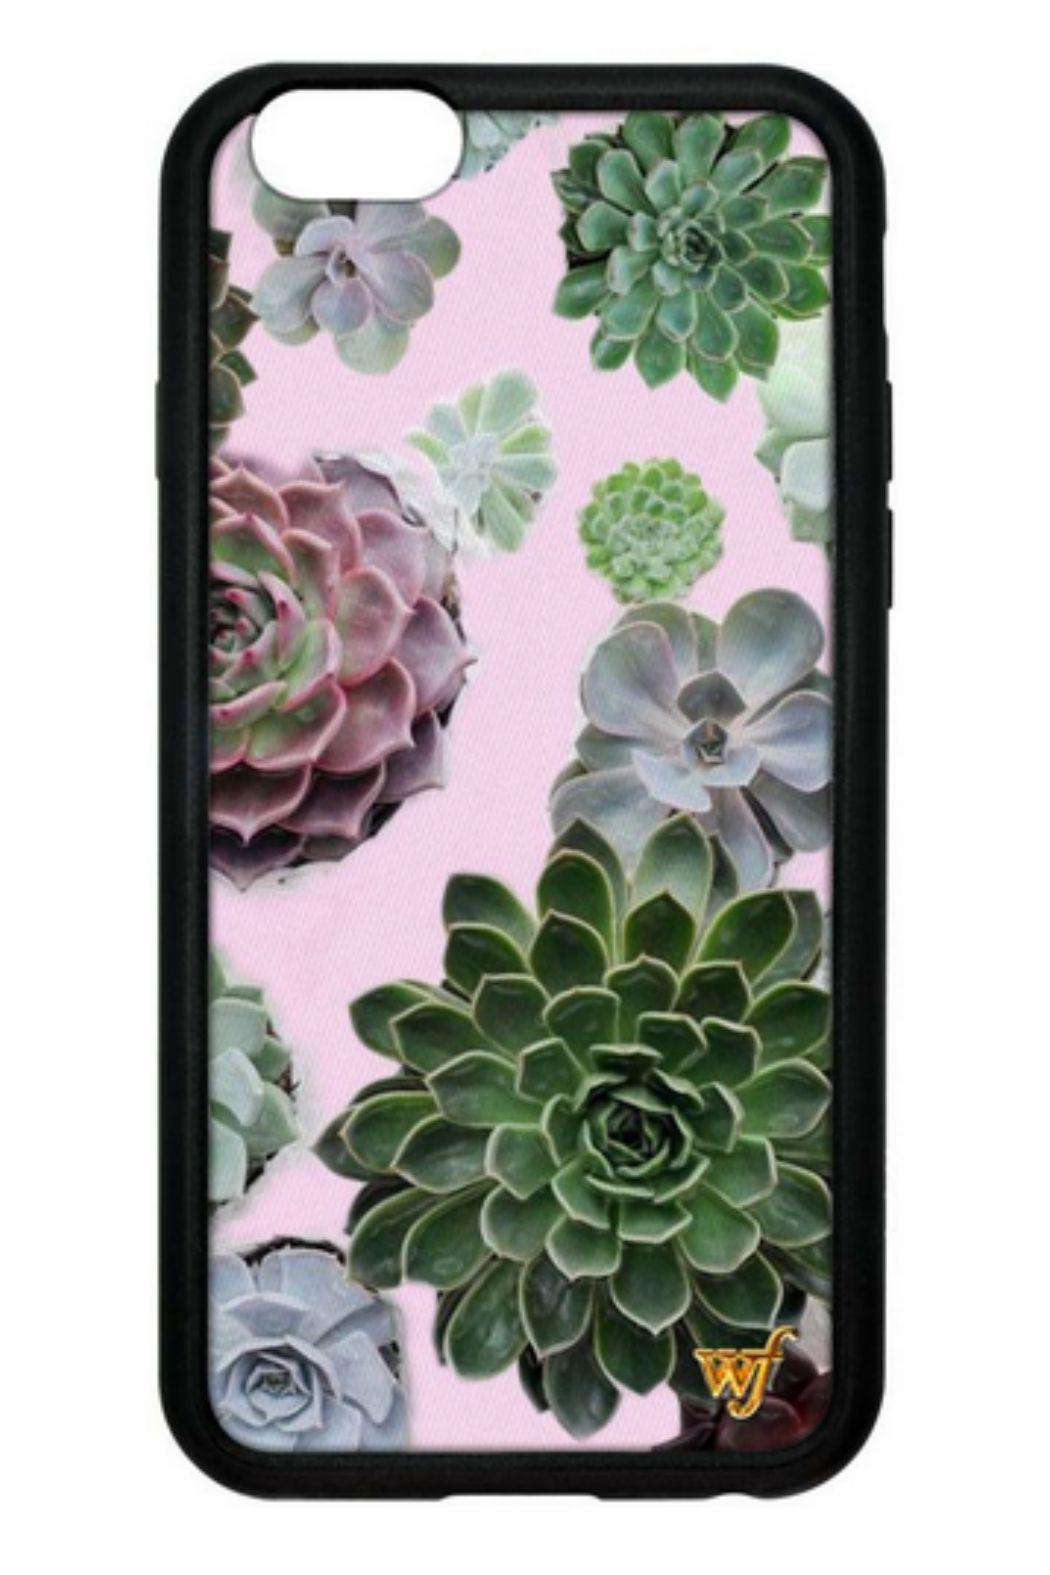 Wildflower Cases Lotus 6 Case from New York by Let's Bag It — Shoptiques